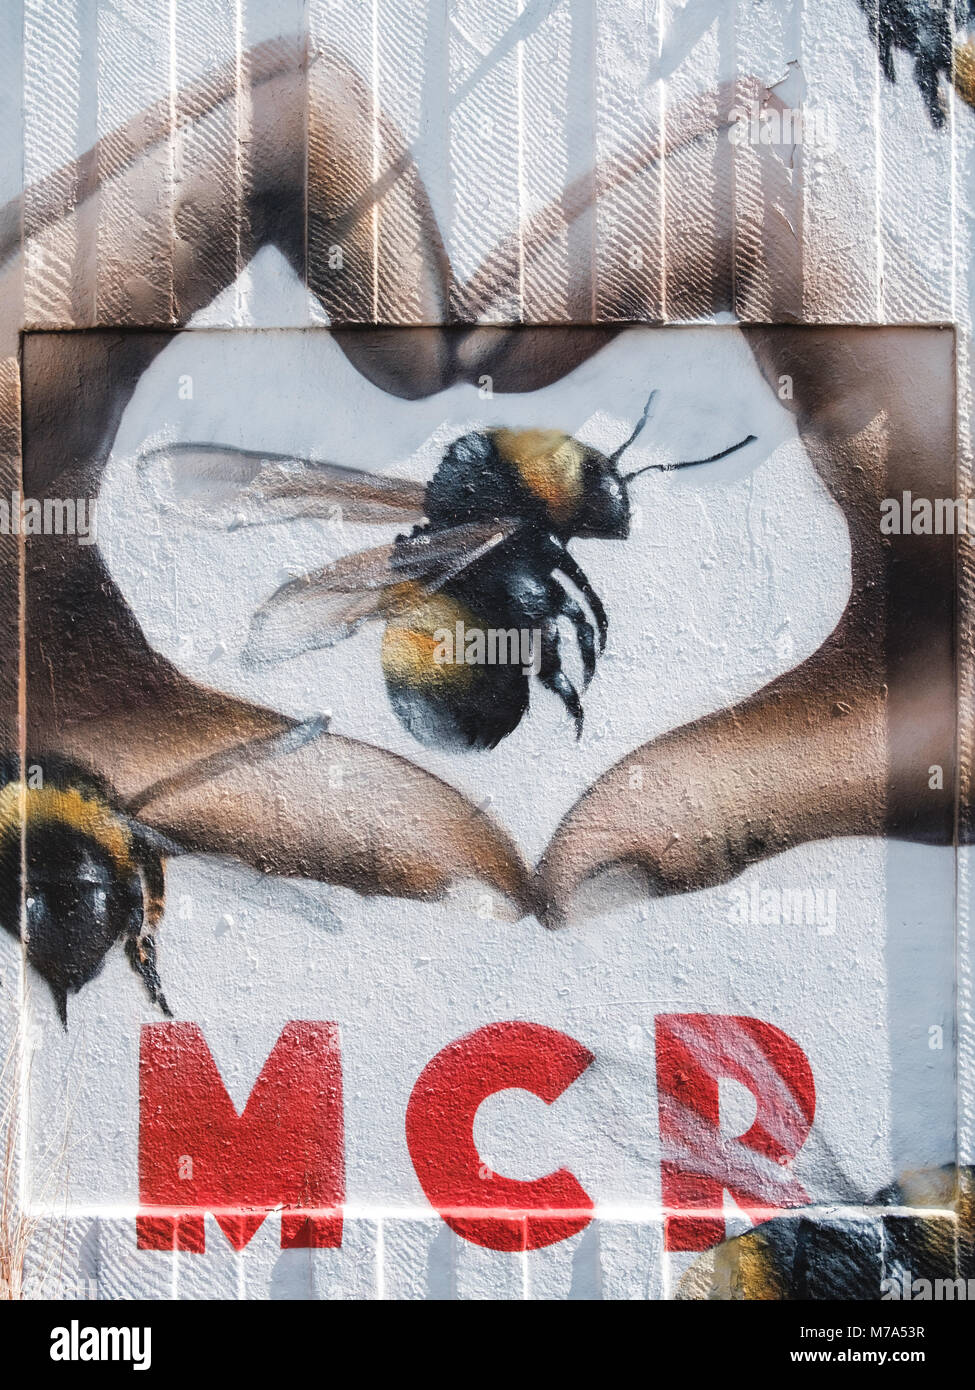 Street art in Manchester's Northern Quarter. The Love MCR design is part of the response to the terrorist attack Stock Photo